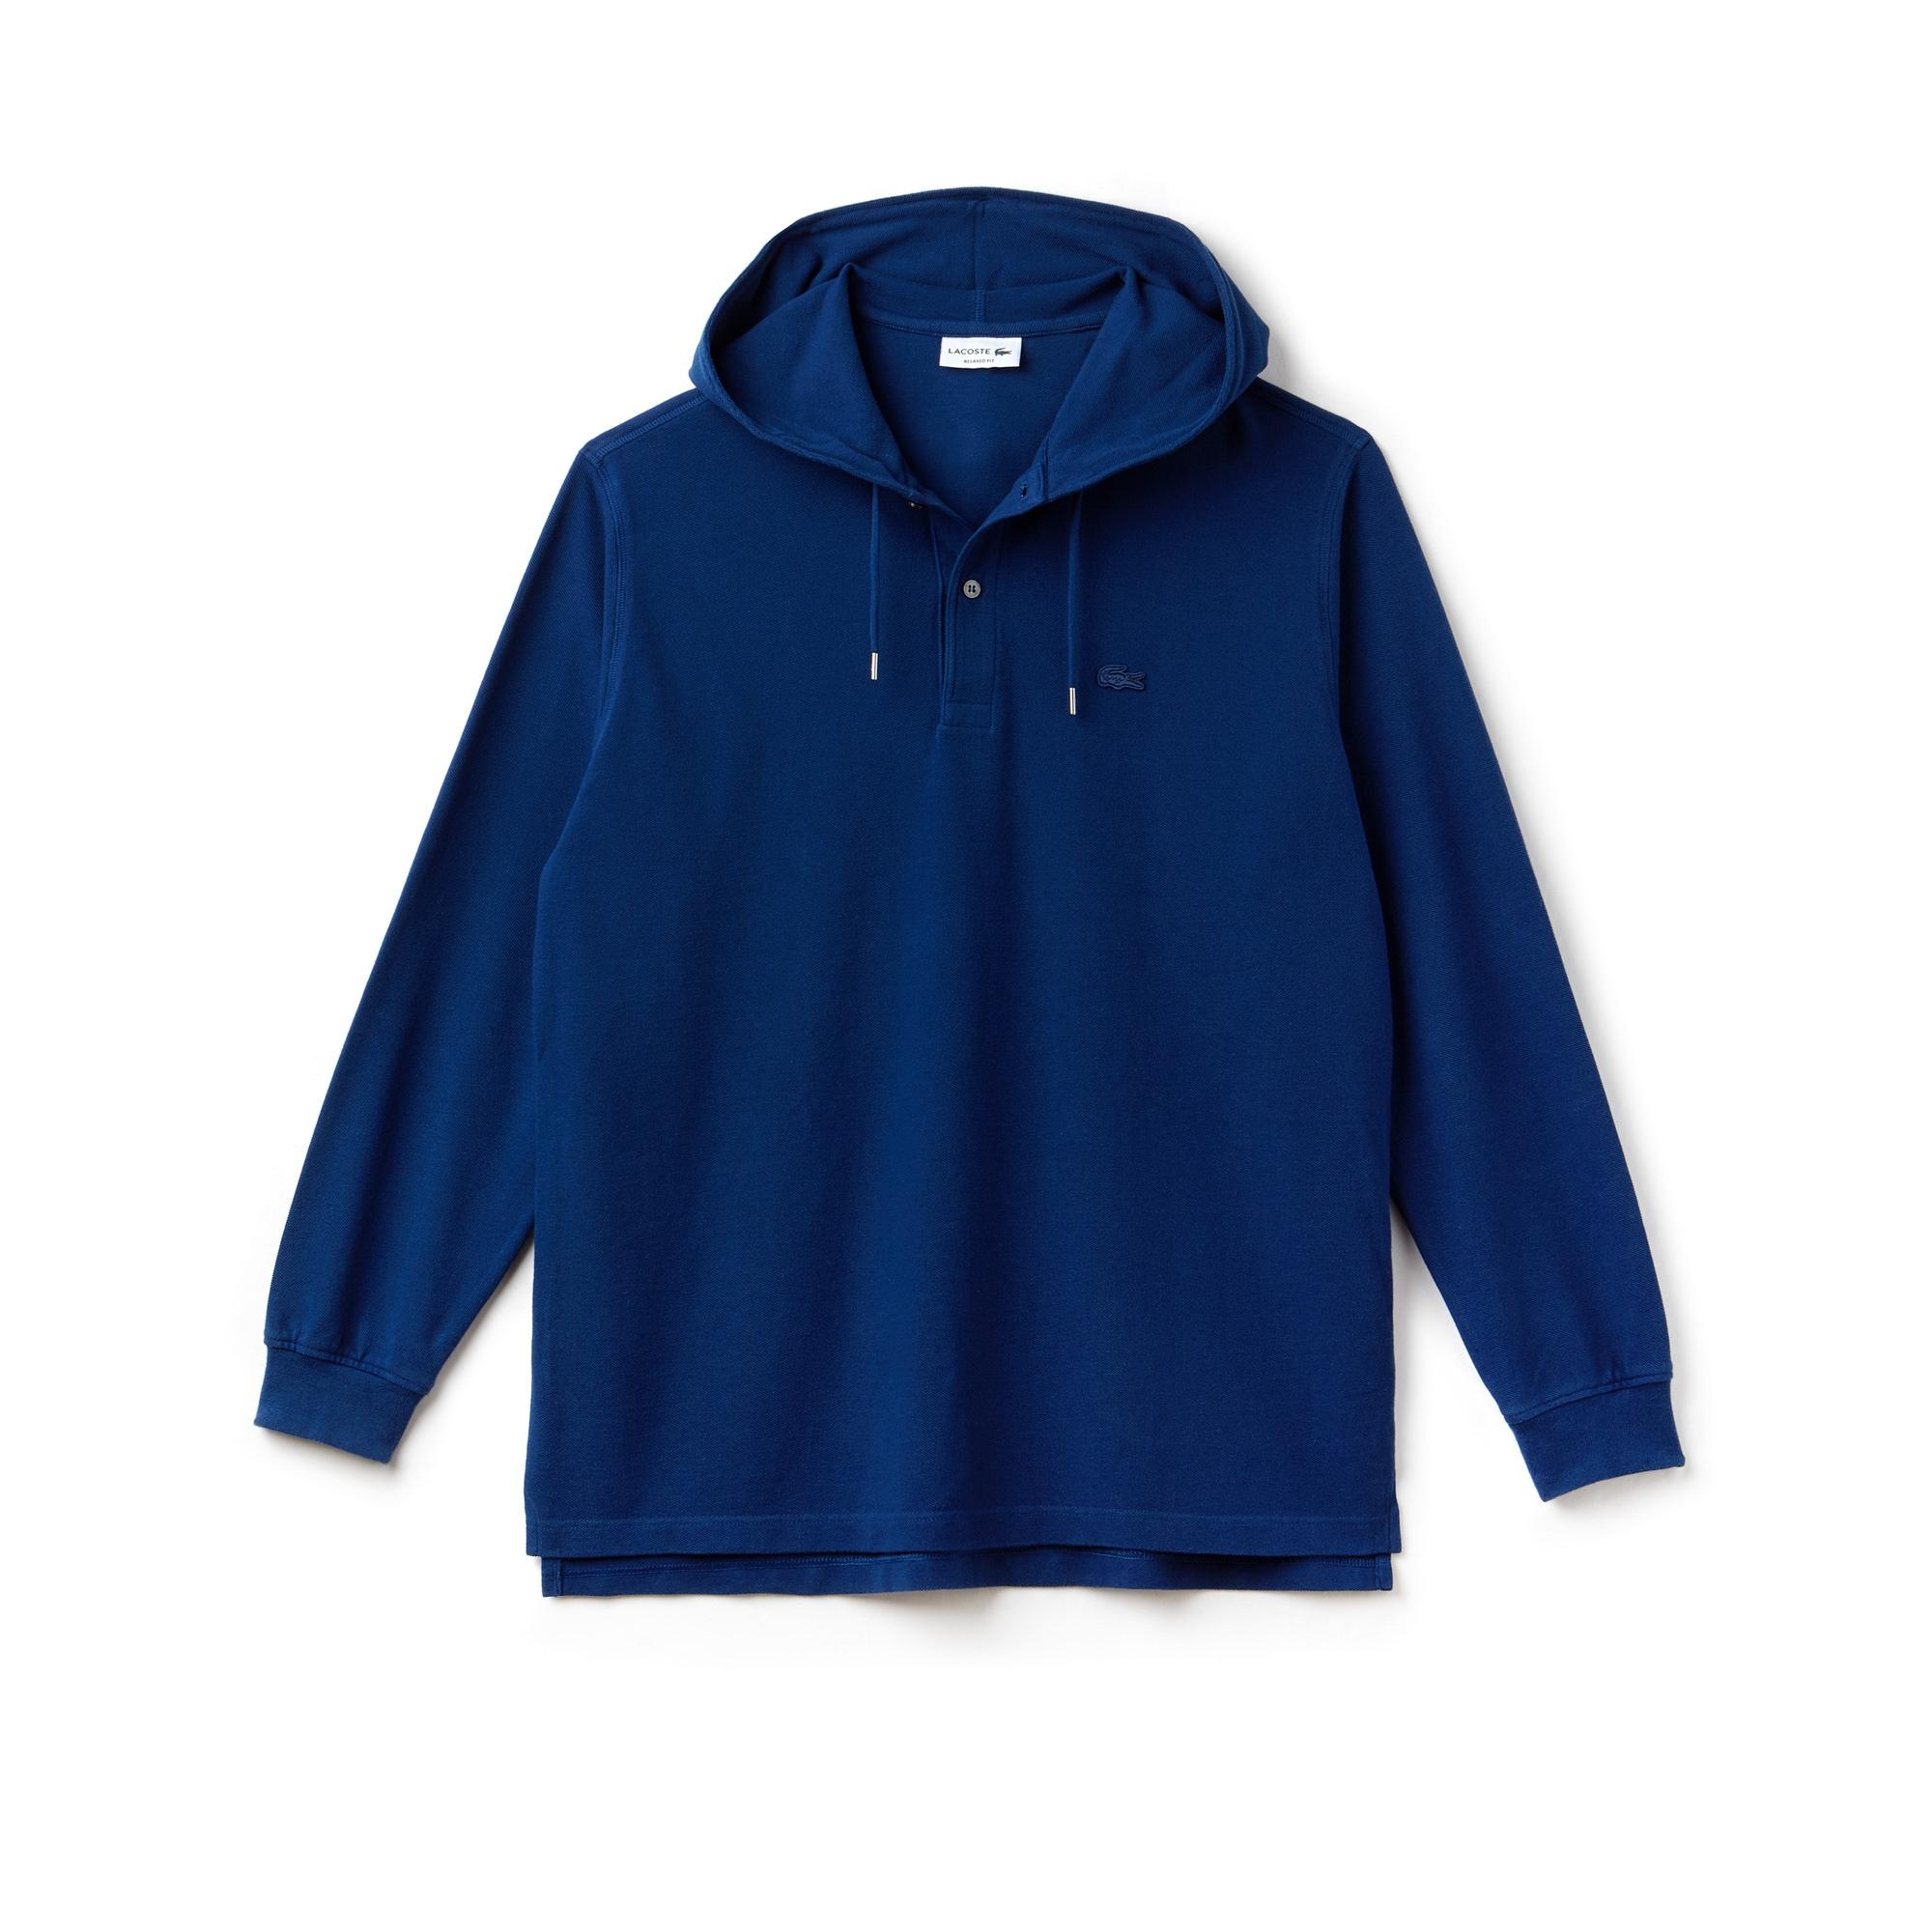 Men's Relaxed Fit Petit Piqué Hooded T-shirt